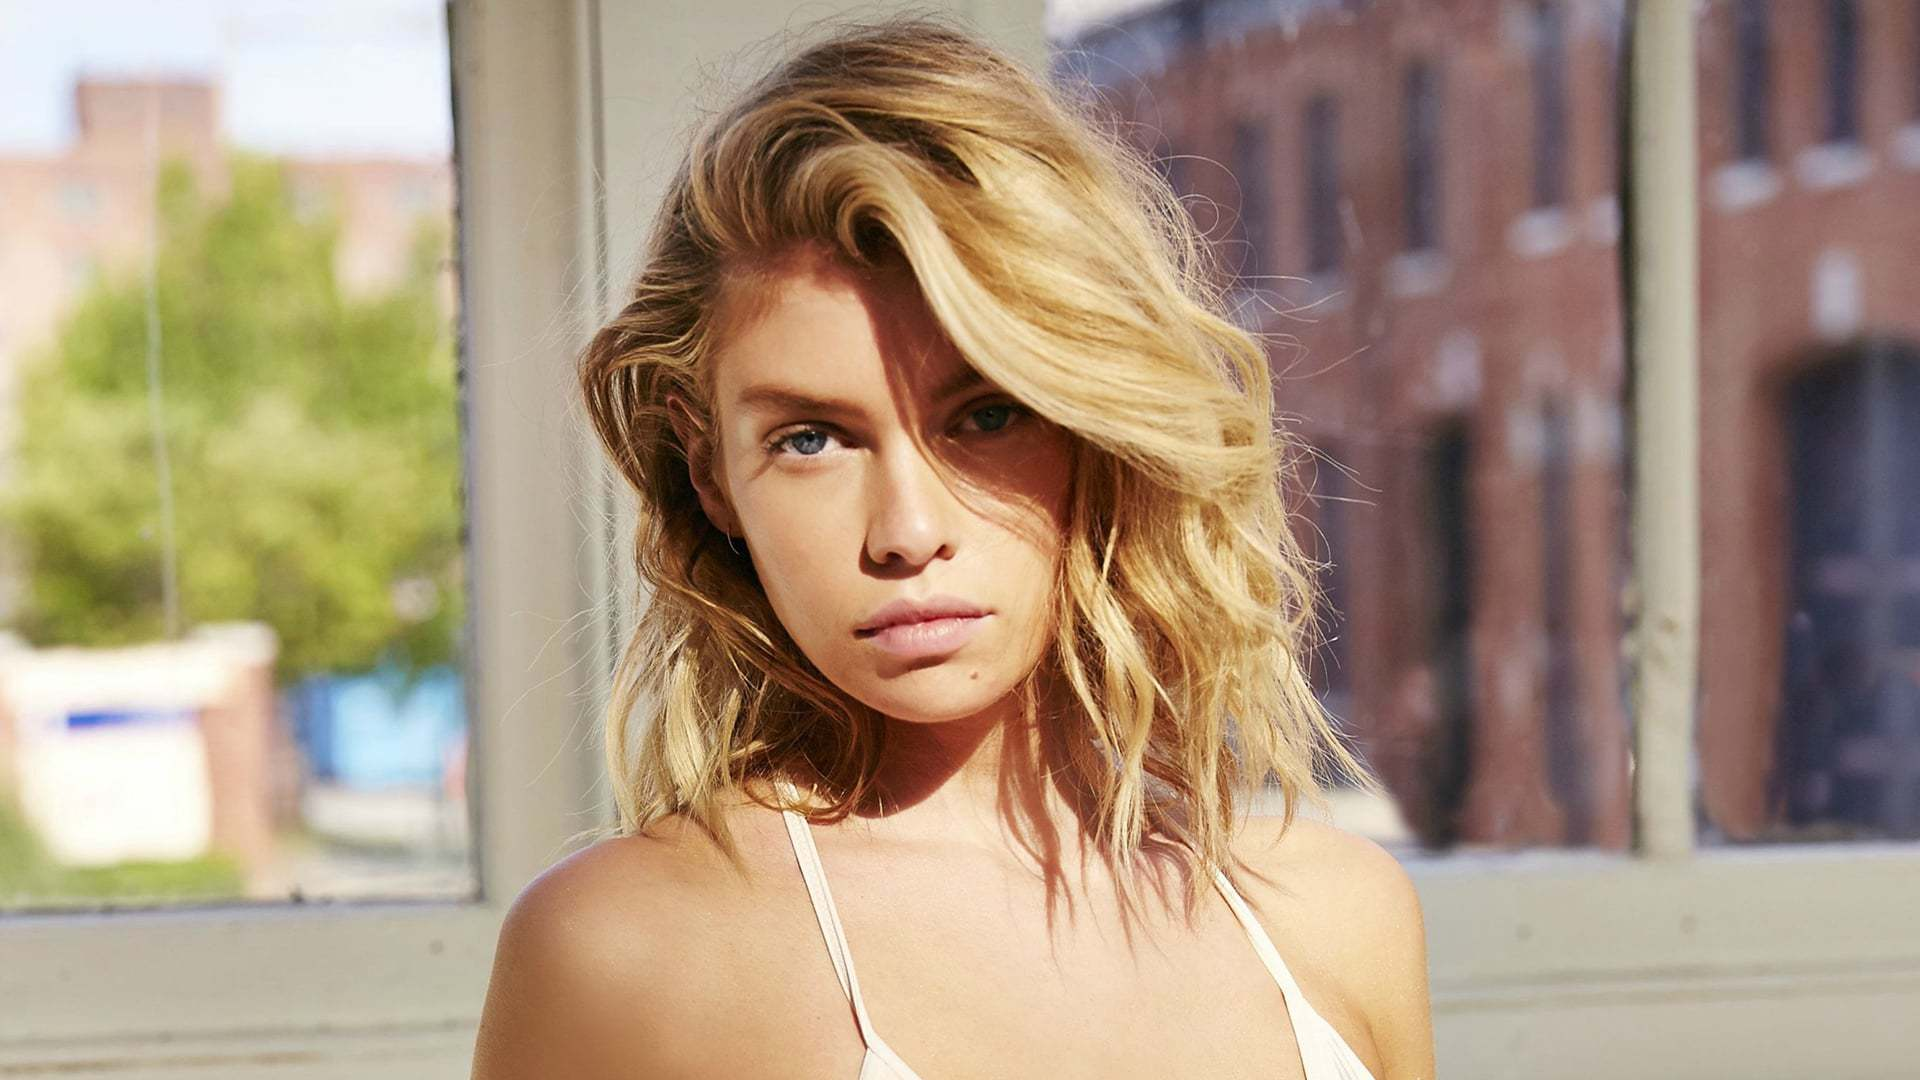 Stella Maxwell Wallpapers Images Photos Pictures Backgrounds 1920x1080